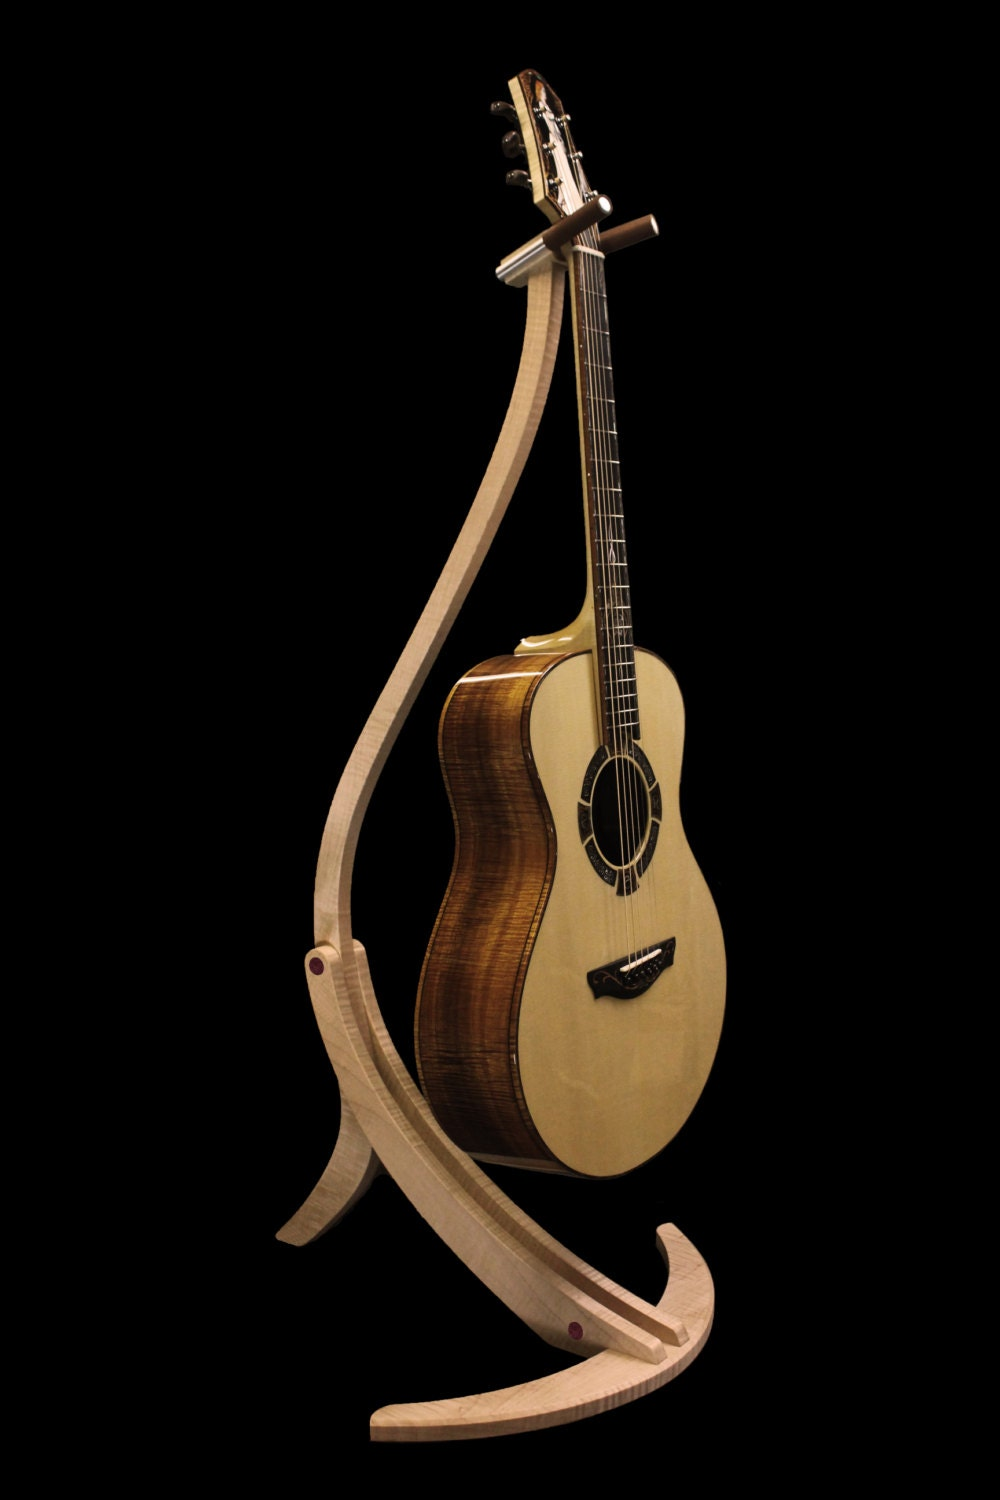 Handcrafted wooden guitar stand by master luthier jason